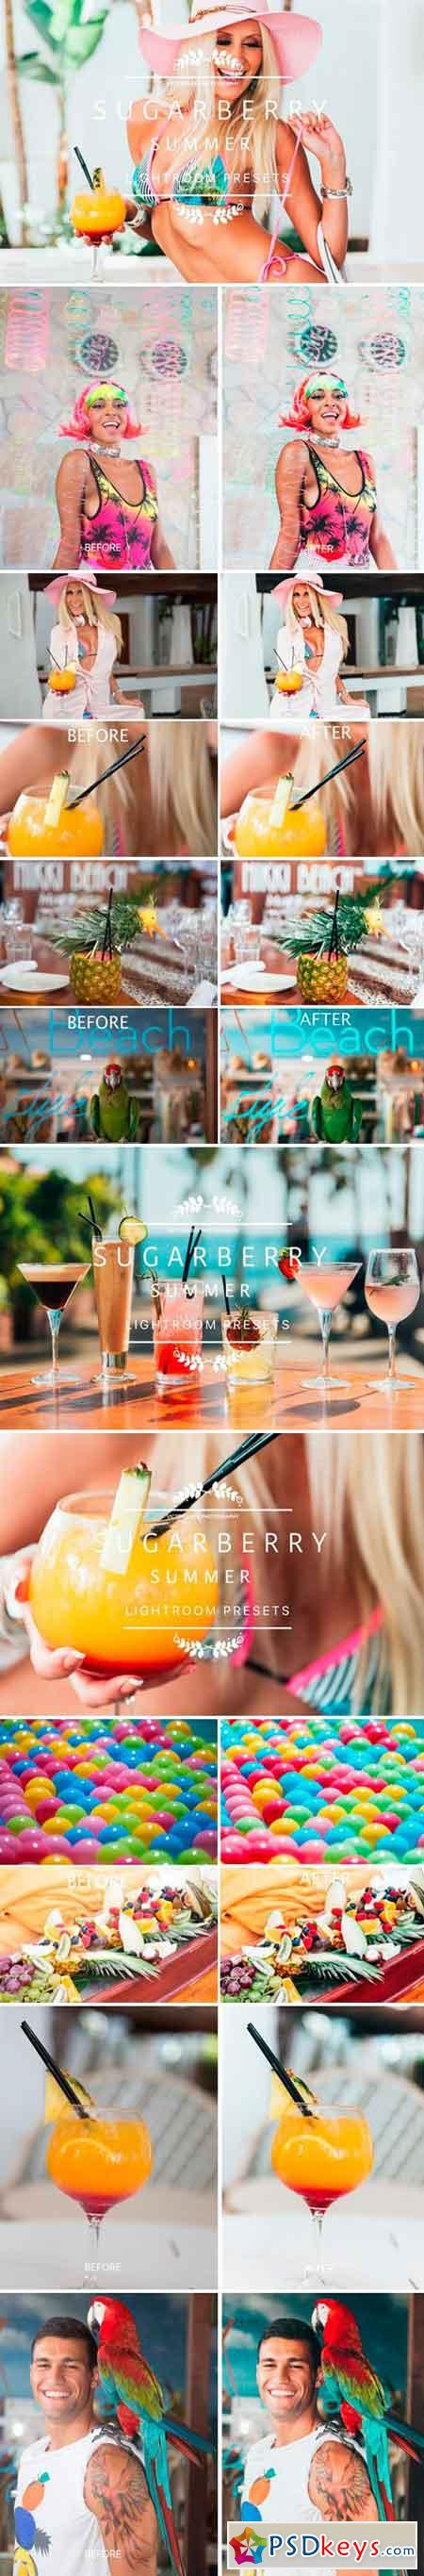 Sugarberry Summer Lightroom Presets 2456454